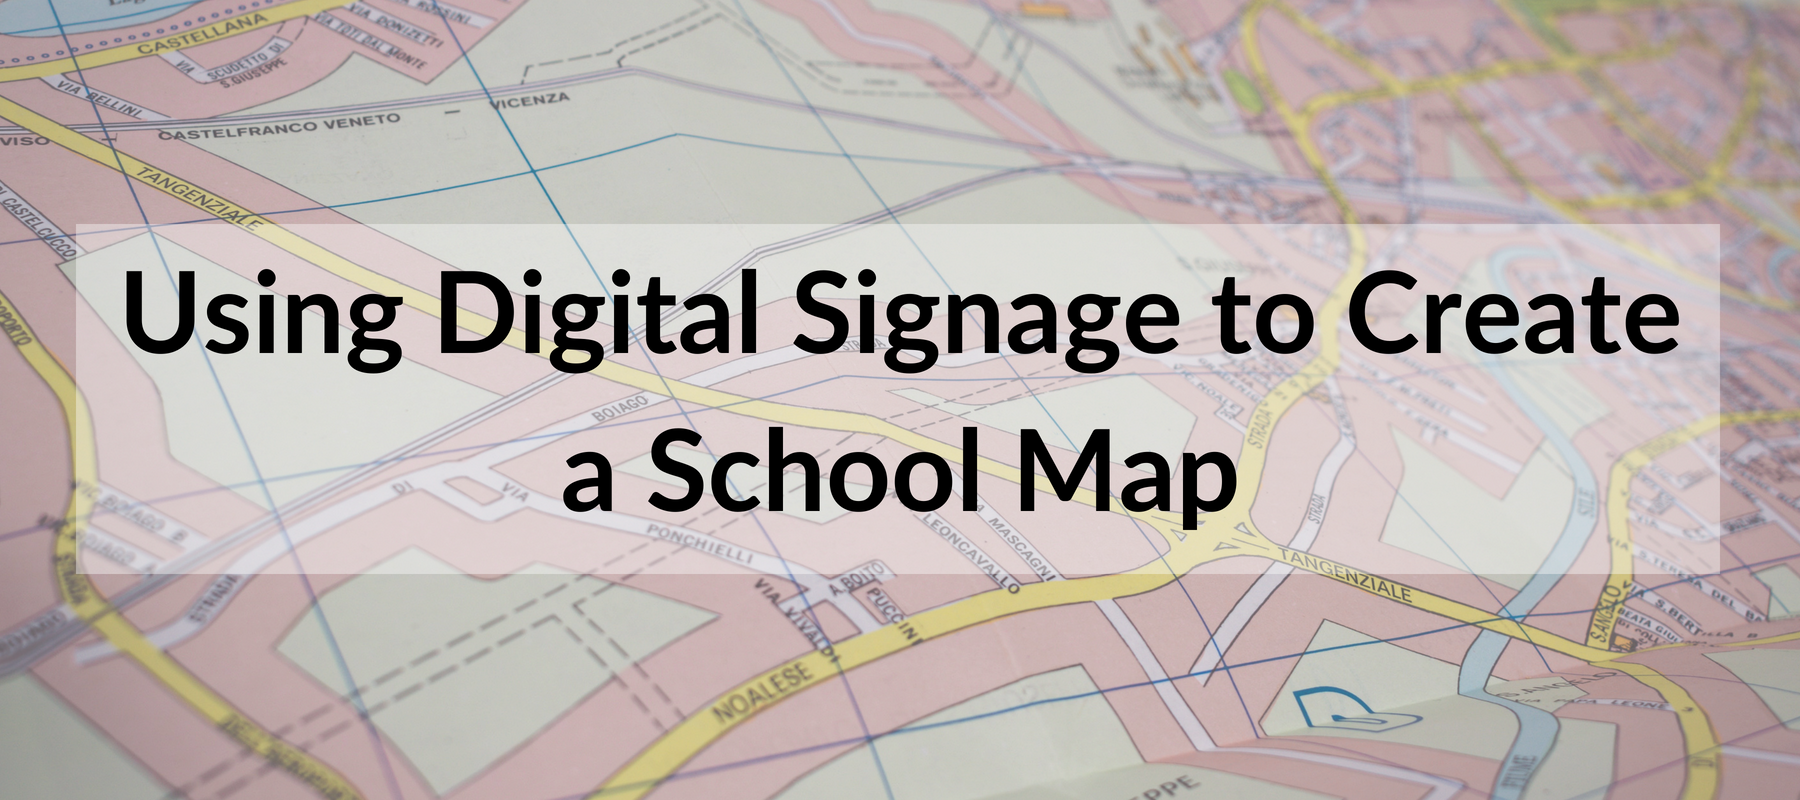 Using Digital Signage to Create a School Map